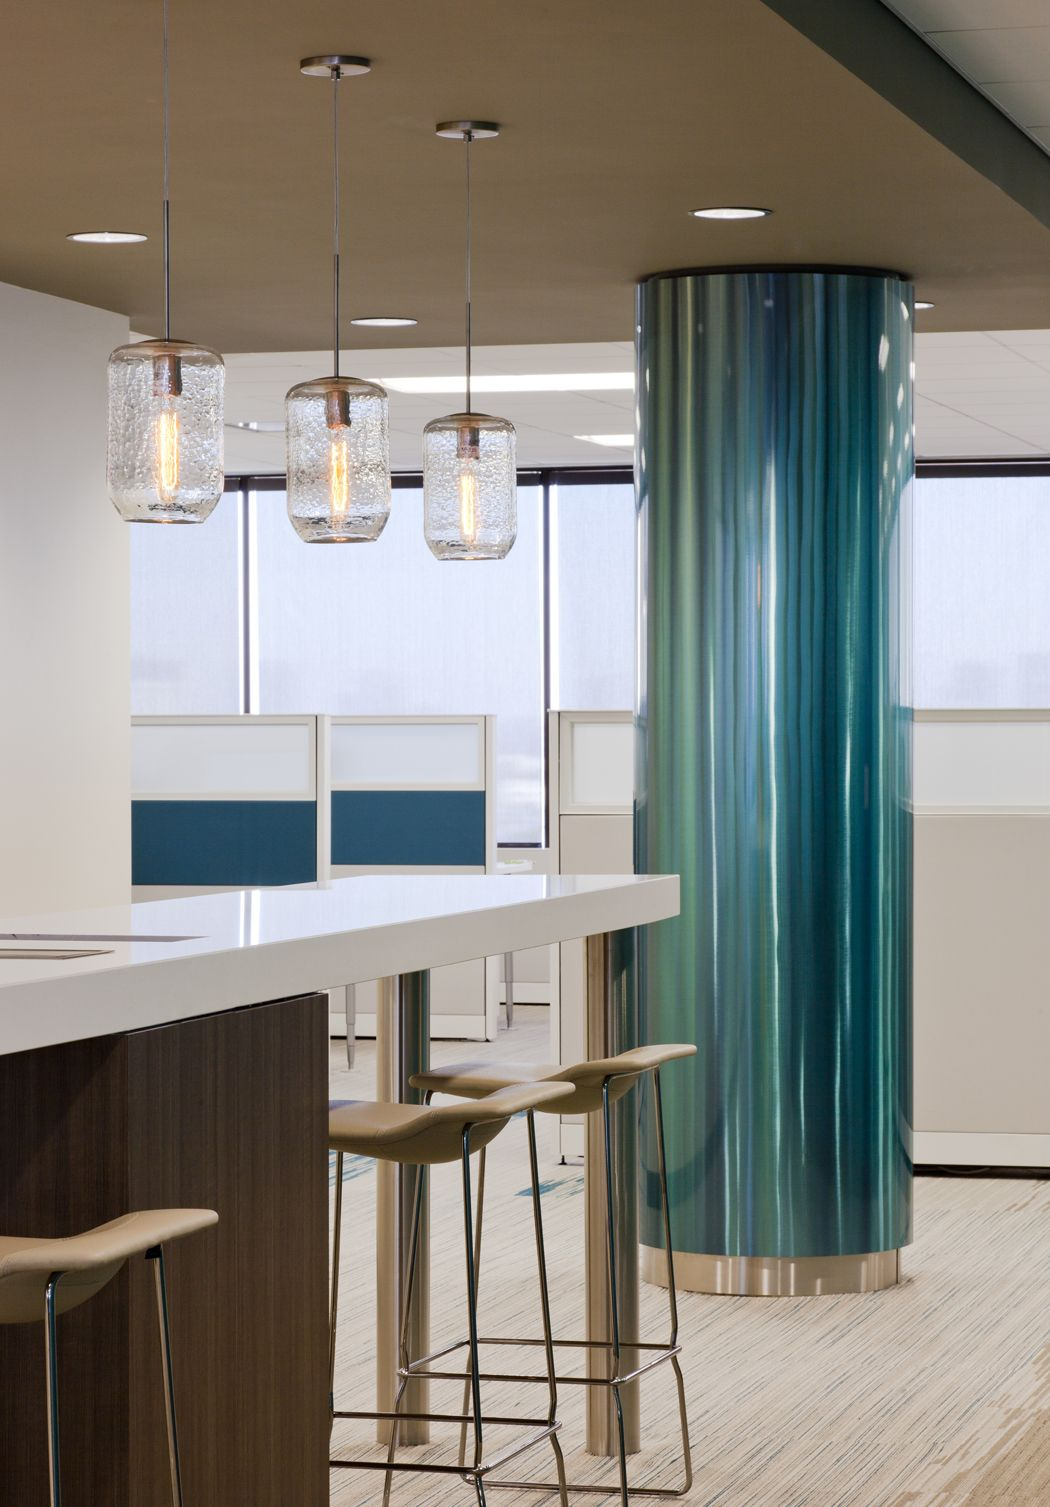 Interior Design Architecture Inspiration Office Design Custom Metals Moz Designer Metals Contemporary Modern C Column Design Interior Design Office Design